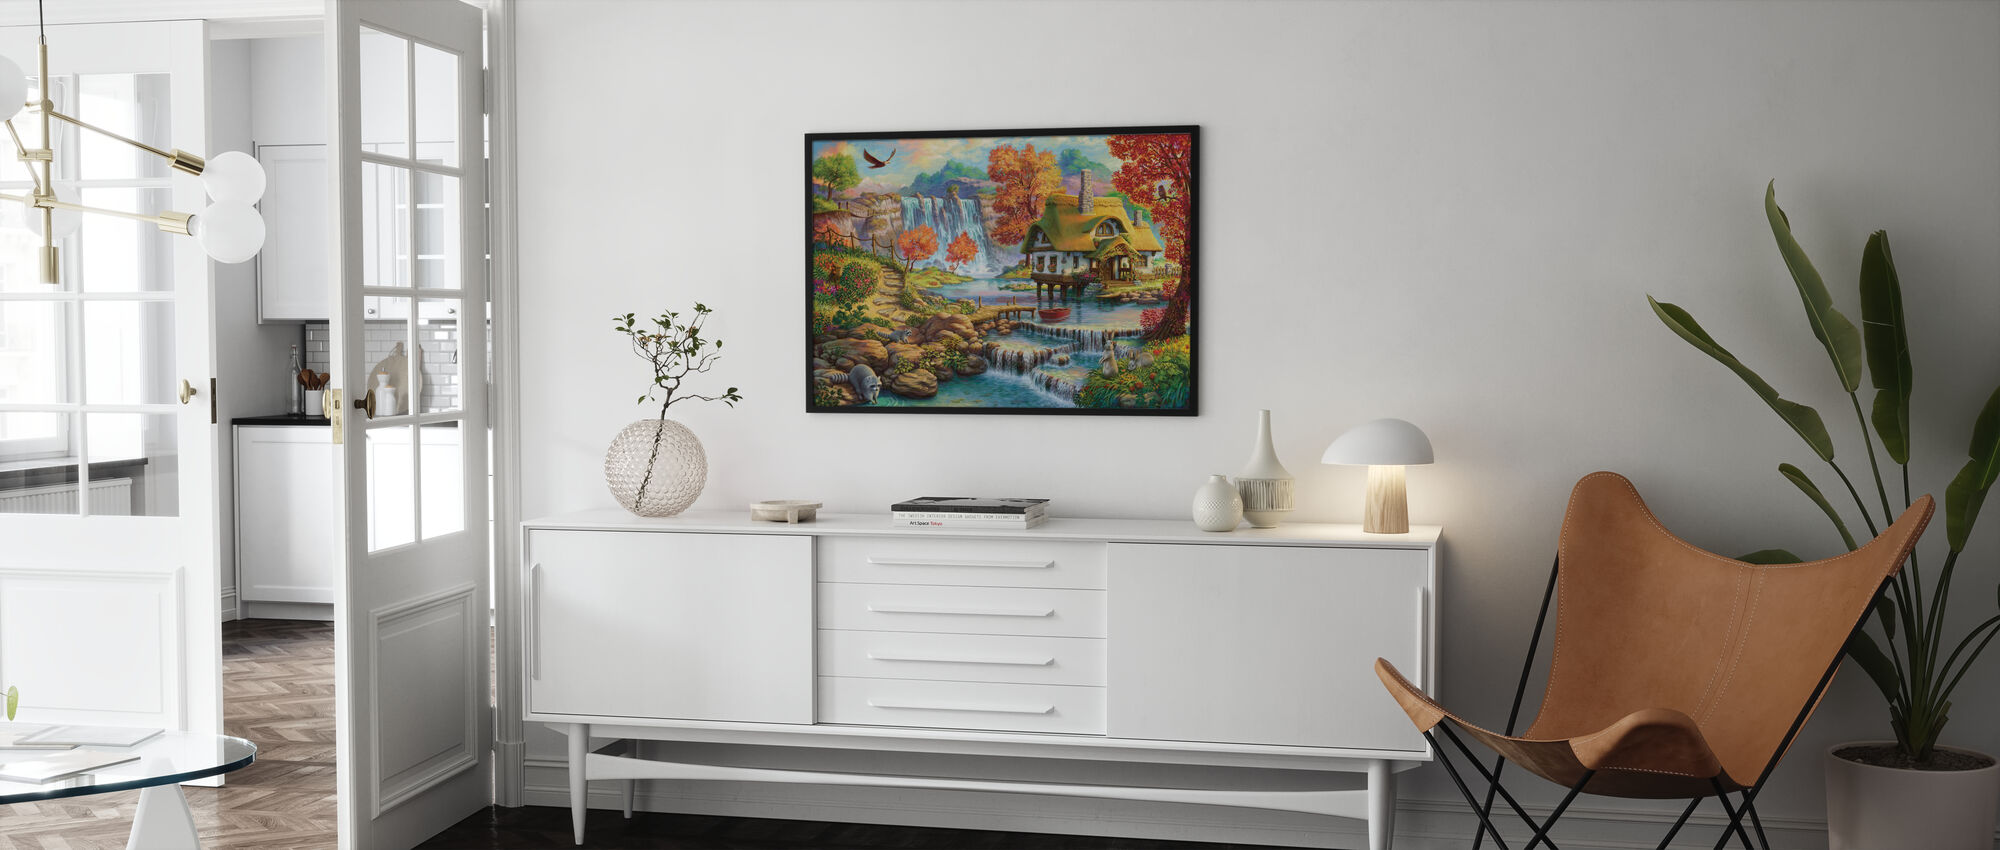 Country House by the Water Fall - Poster - Living Room